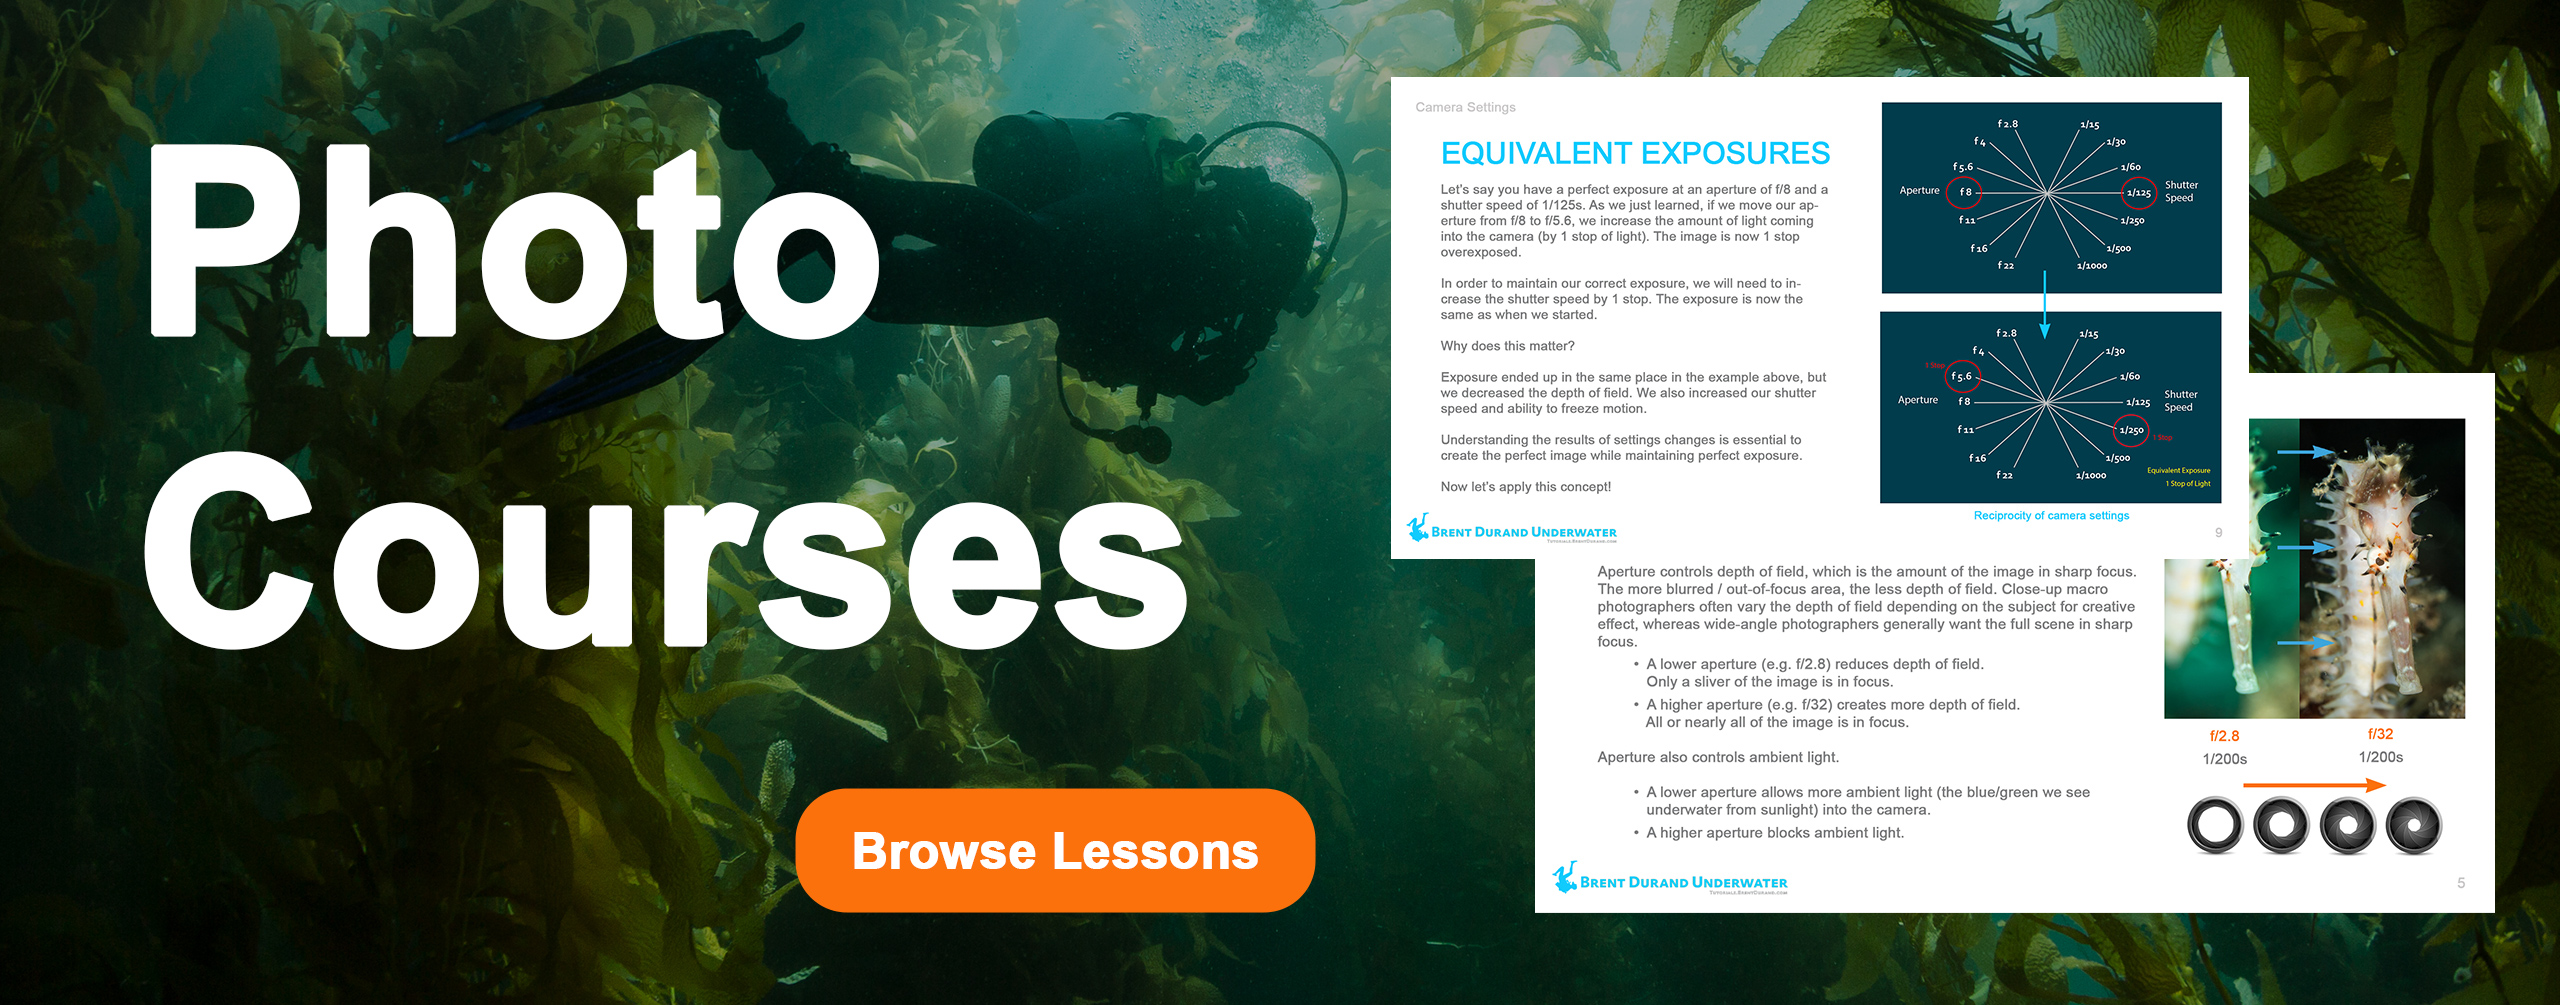 Underwater Photo Courses promo image